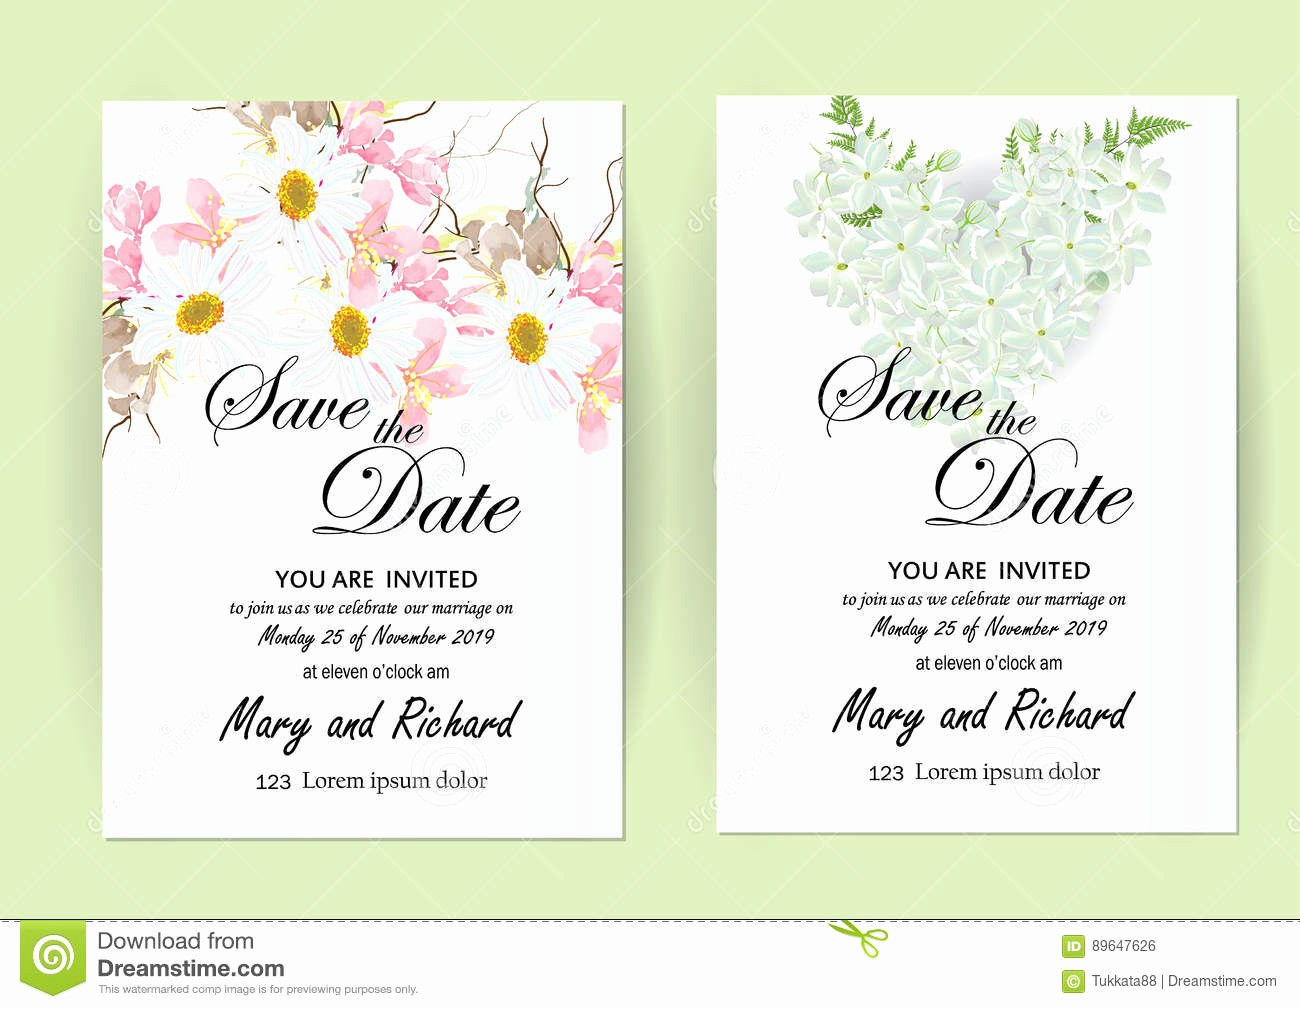 Cooking Class Gift Certificate Template Awesome Wedding Invitation Card Flowers Jasmine Stock Illustration